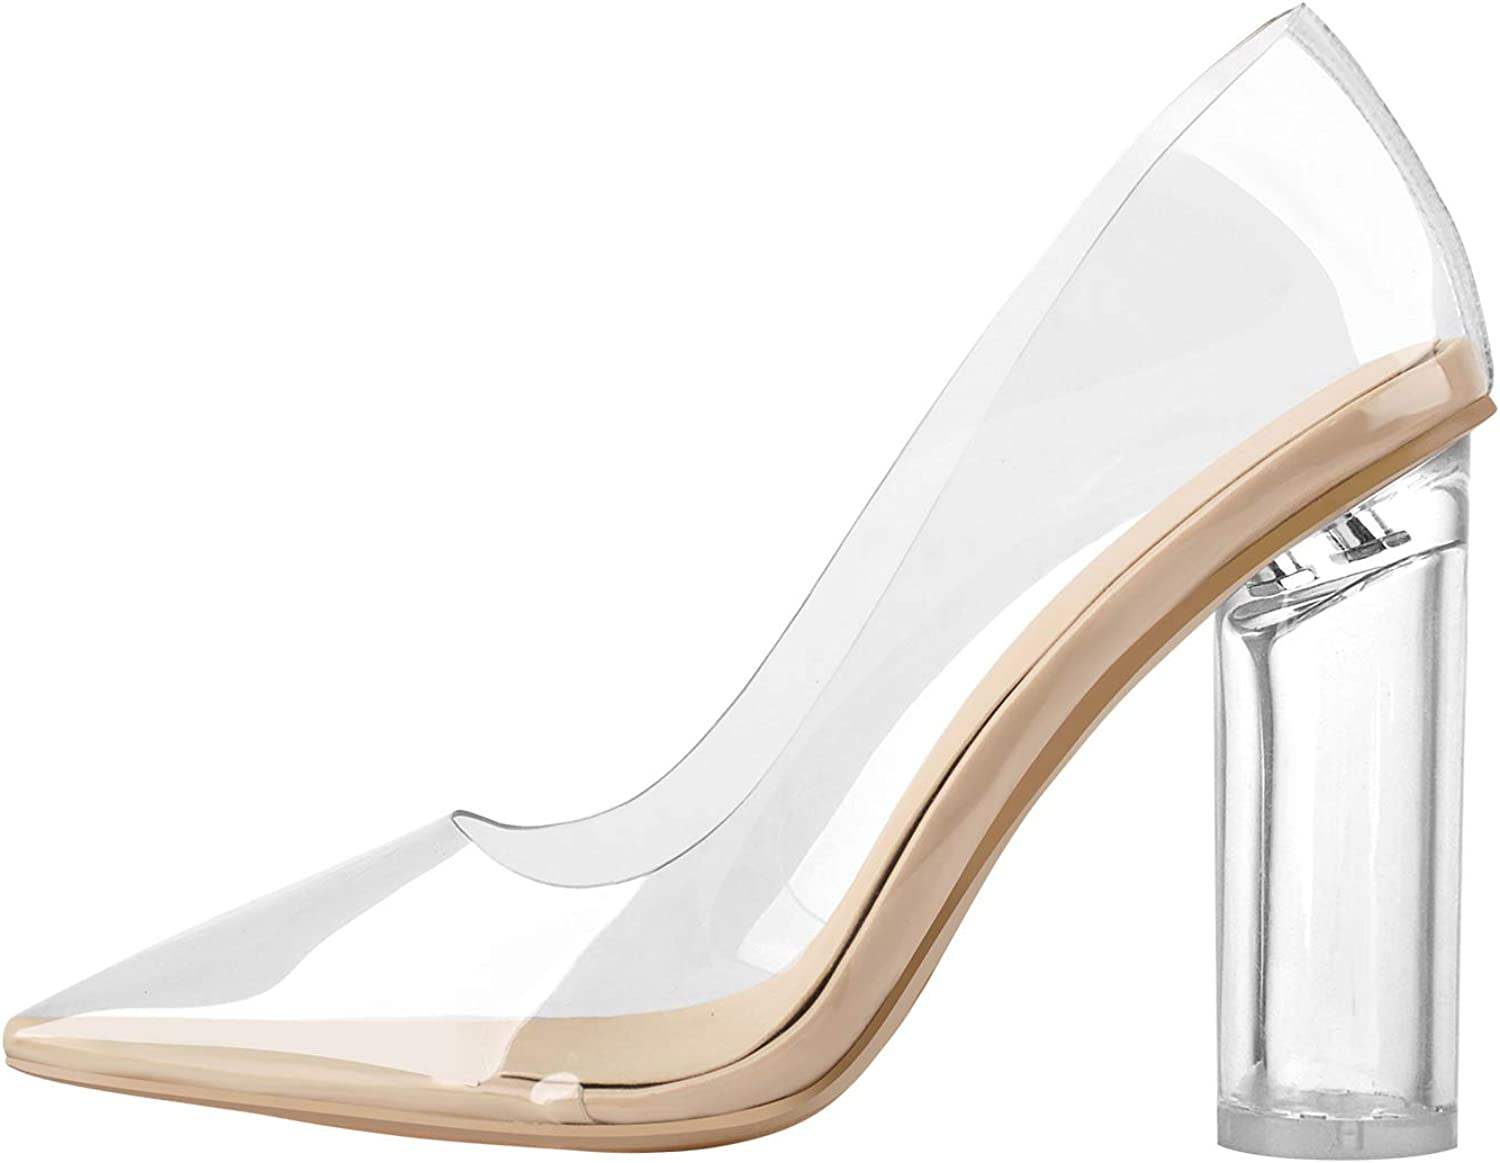 Outlet ☆ Free Shipping LISHAN trend rank Women's Clear High Pumps Pointed Toe Heels